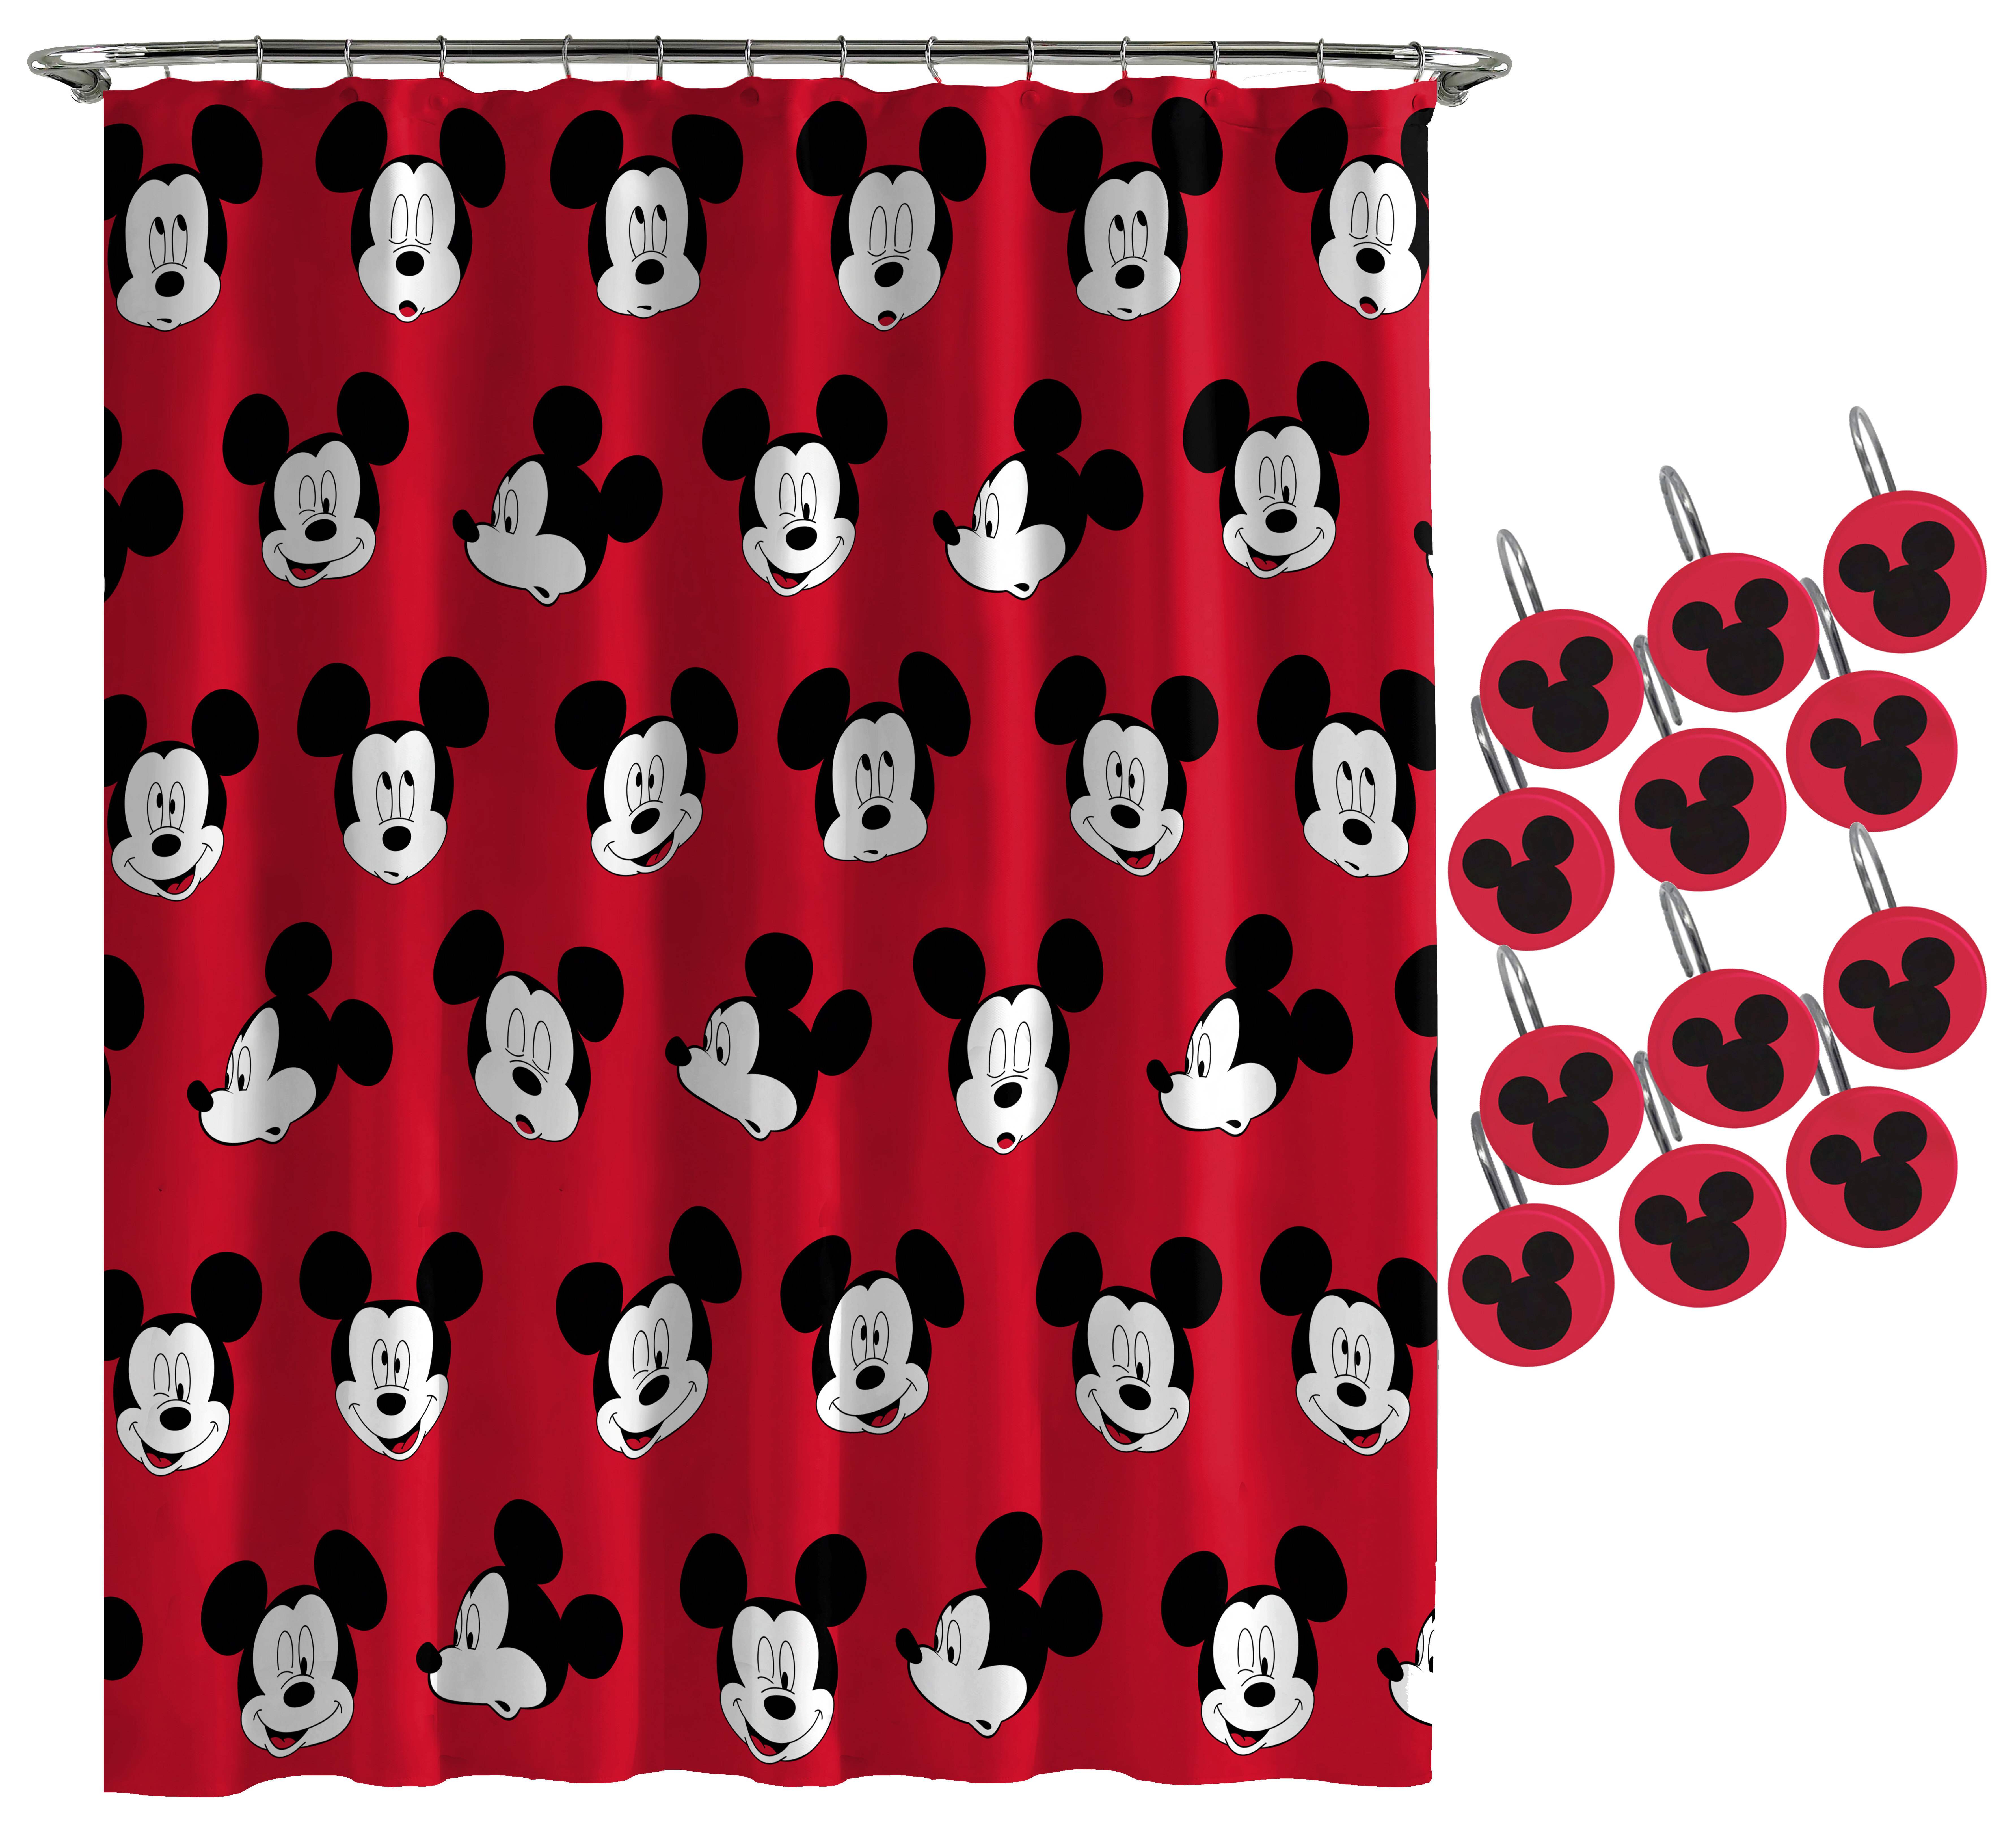 Swell Disney Mickey Mouse Heads Shower Curtain Download Free Architecture Designs Scobabritishbridgeorg